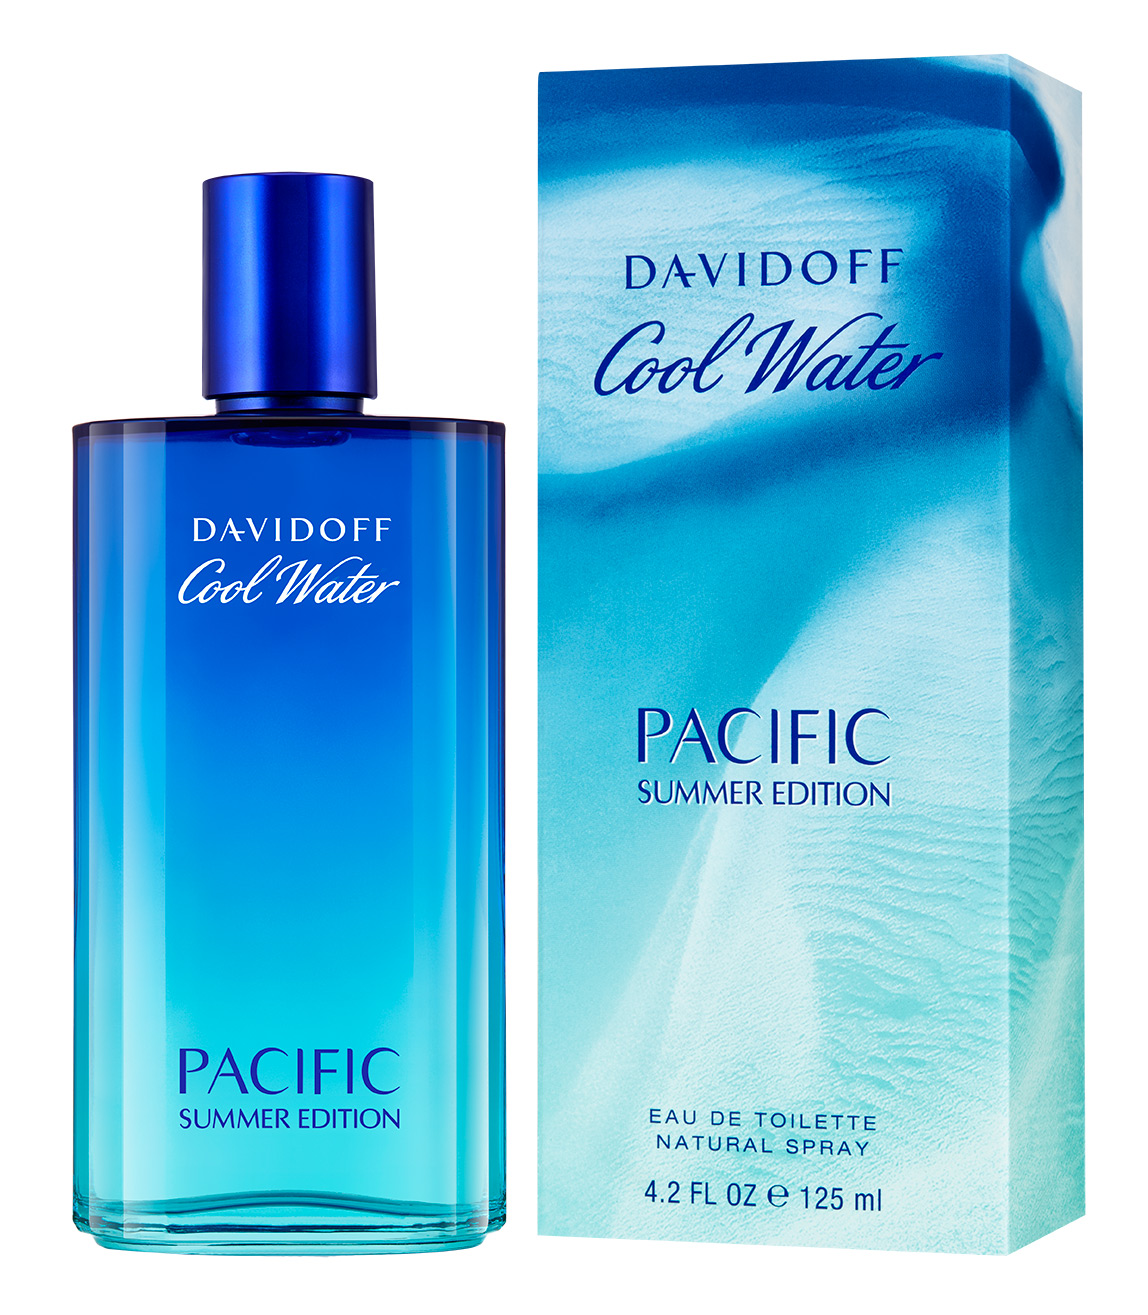 Cool Water Pacific Summer Edition For Men Davidoff Cologne A New